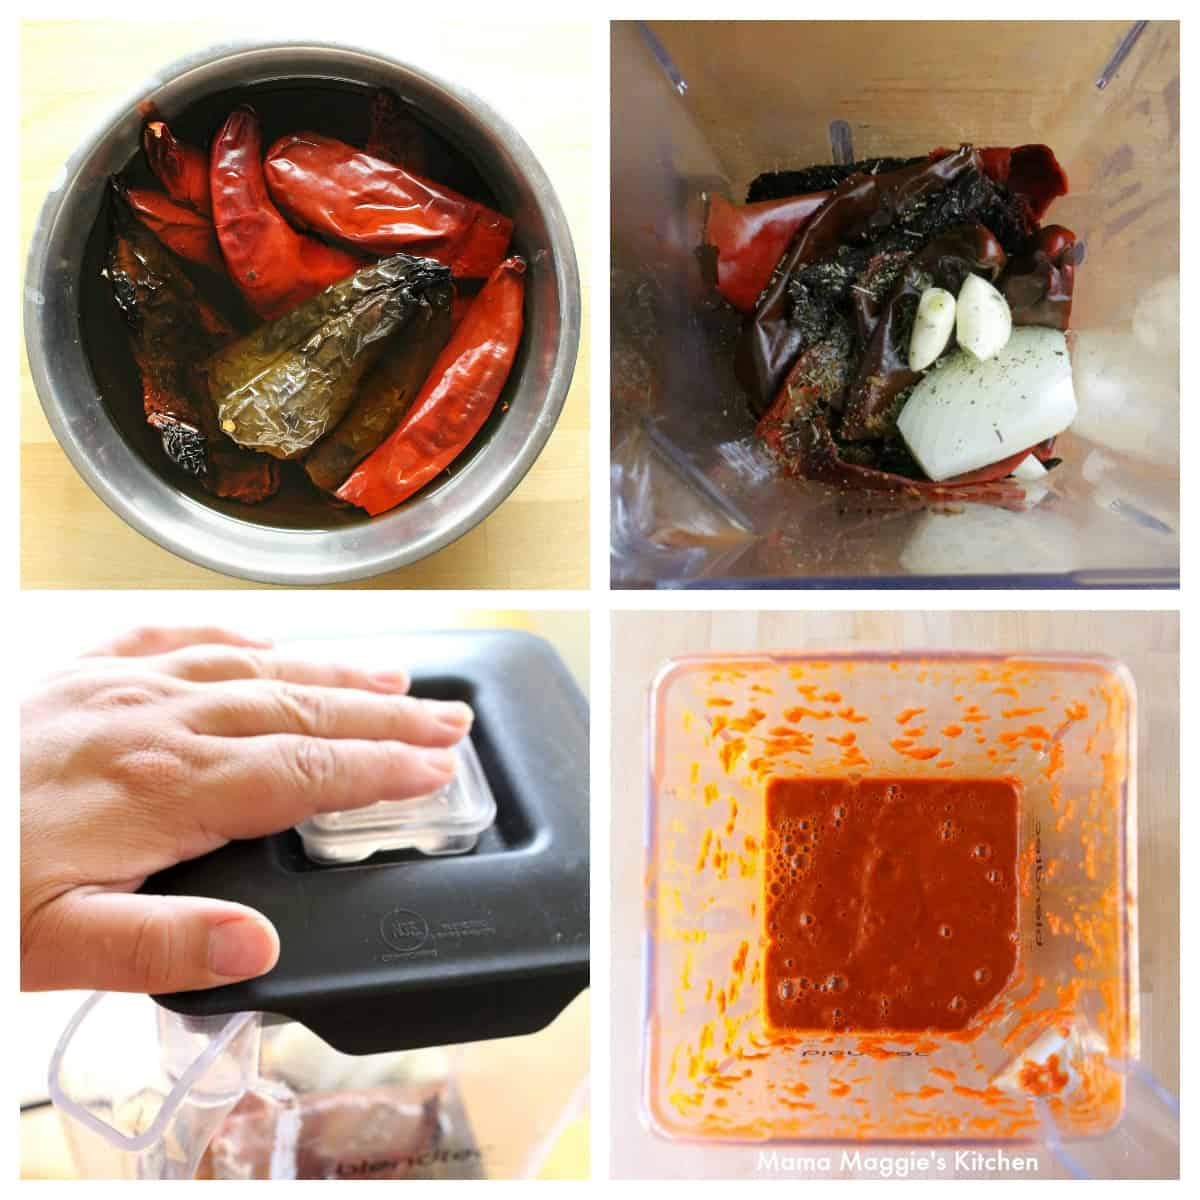 A collage showing how to rehydrate chiles and convert them into the chile colorado sauce.